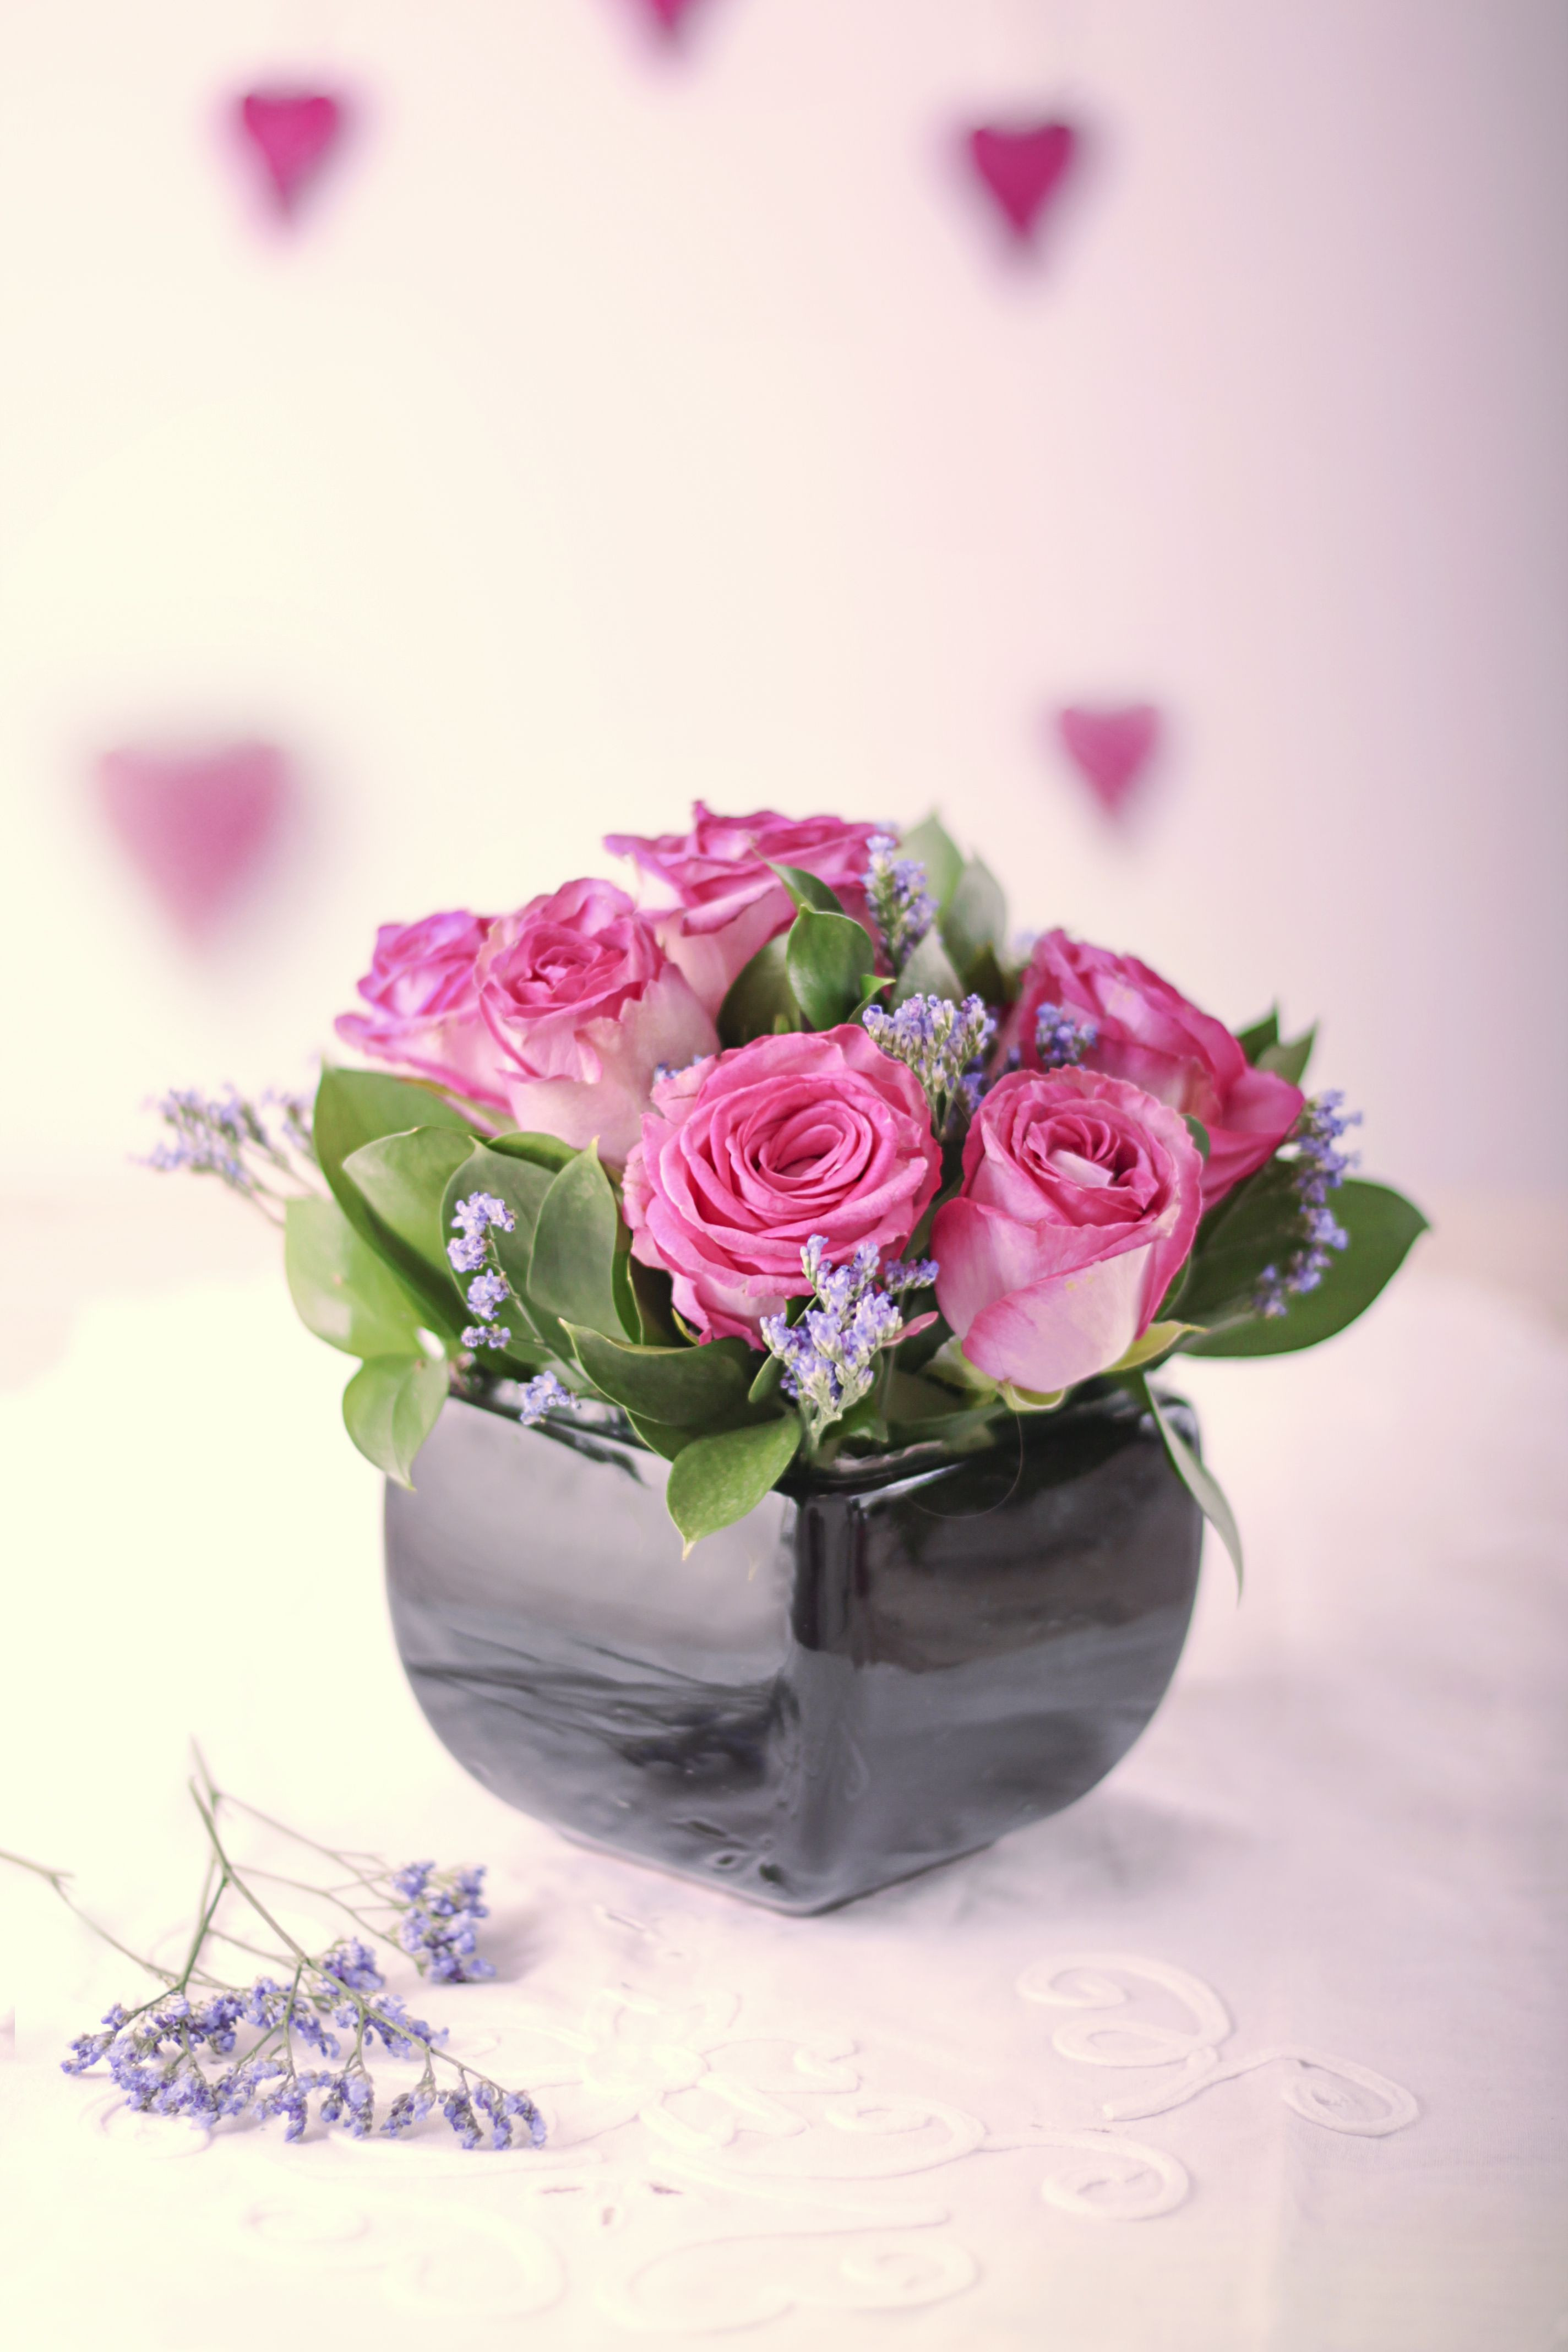 Petite Pink Roses in a small glass vase